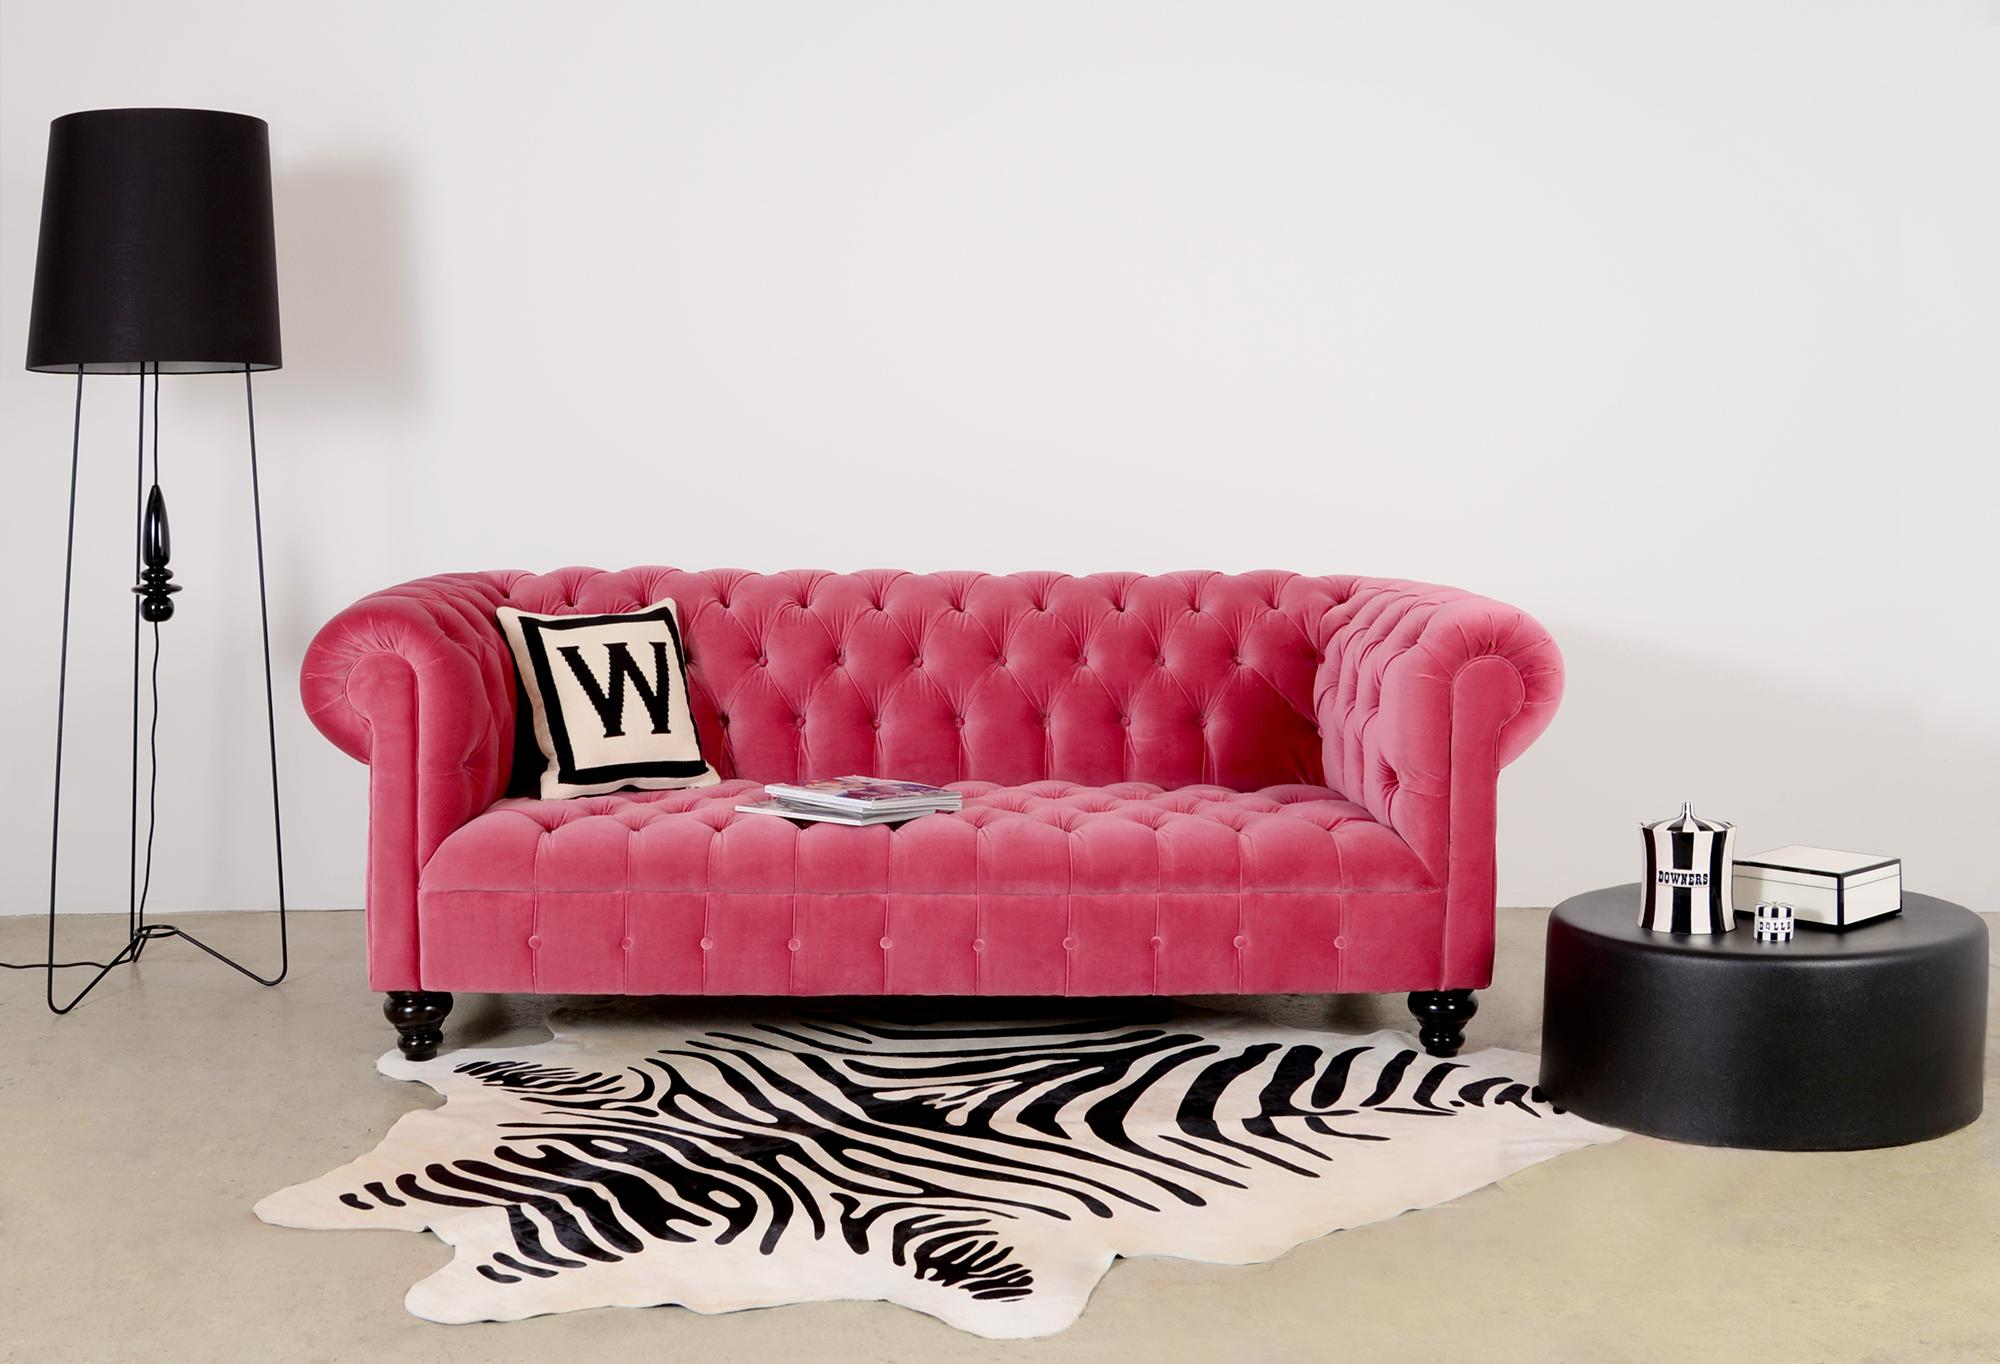 Sofa Von Wilmowsky Von Wilmowsky Chesterfield Sofa Quotliberty Quot Chesterfi